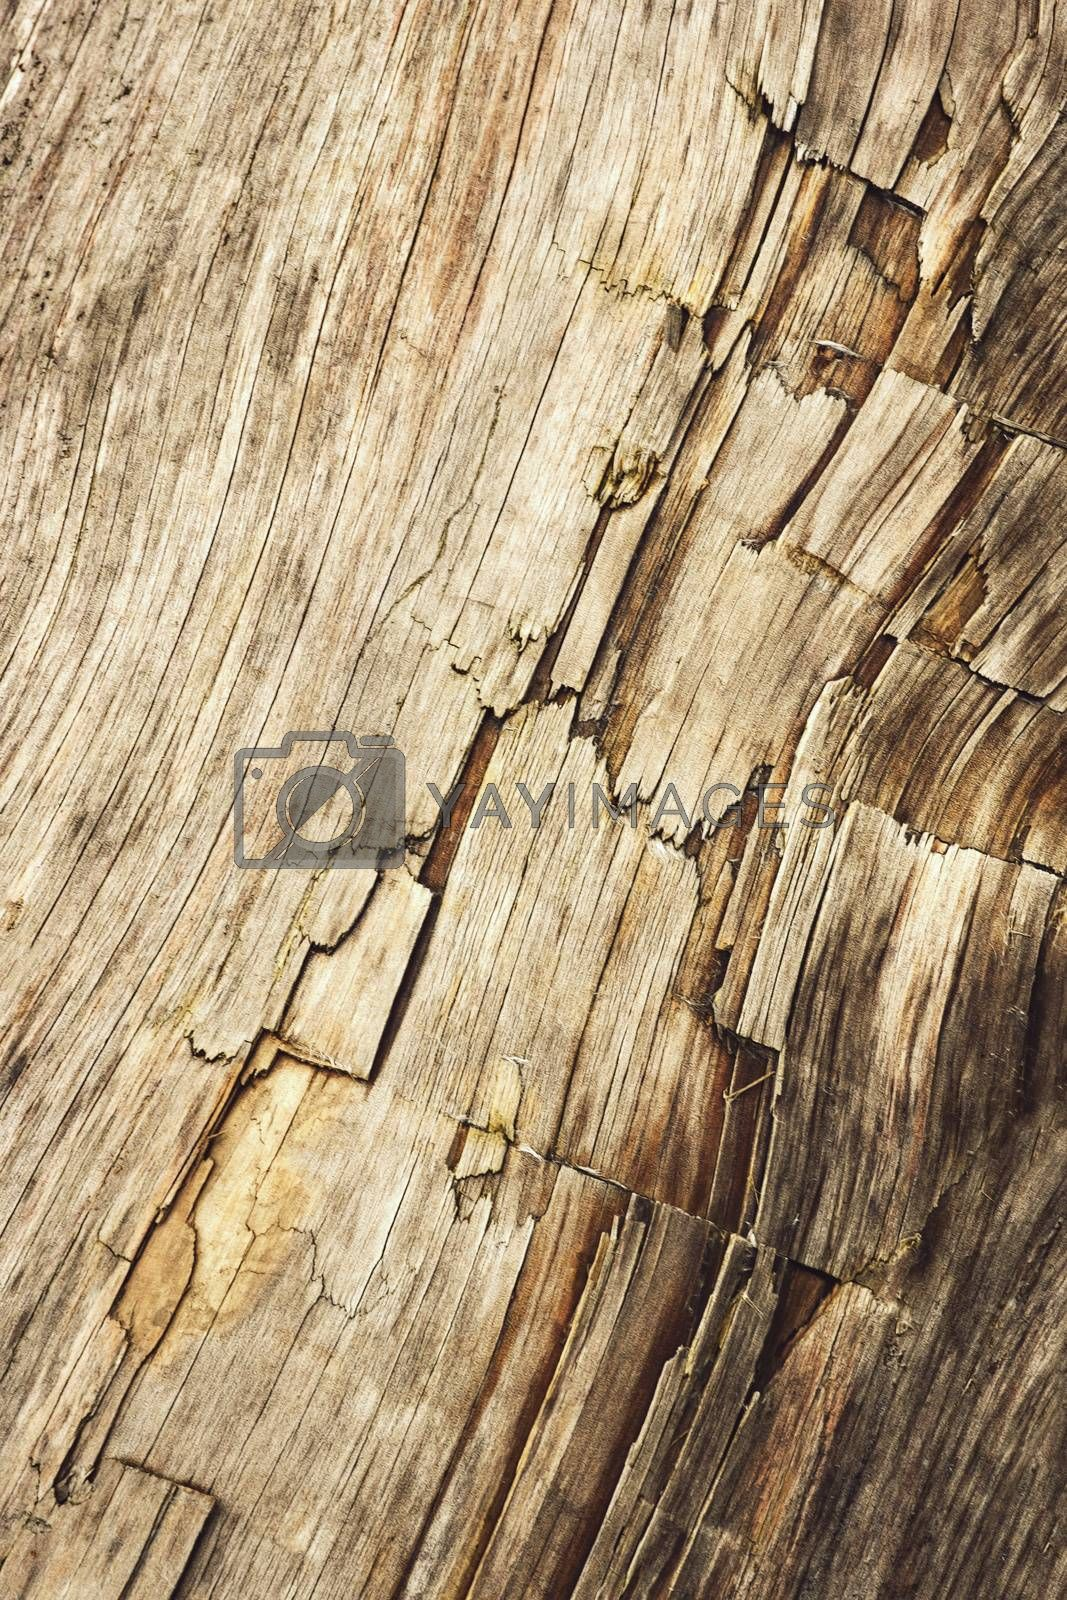 background or texture detail of an old wooden log trunk with cracks